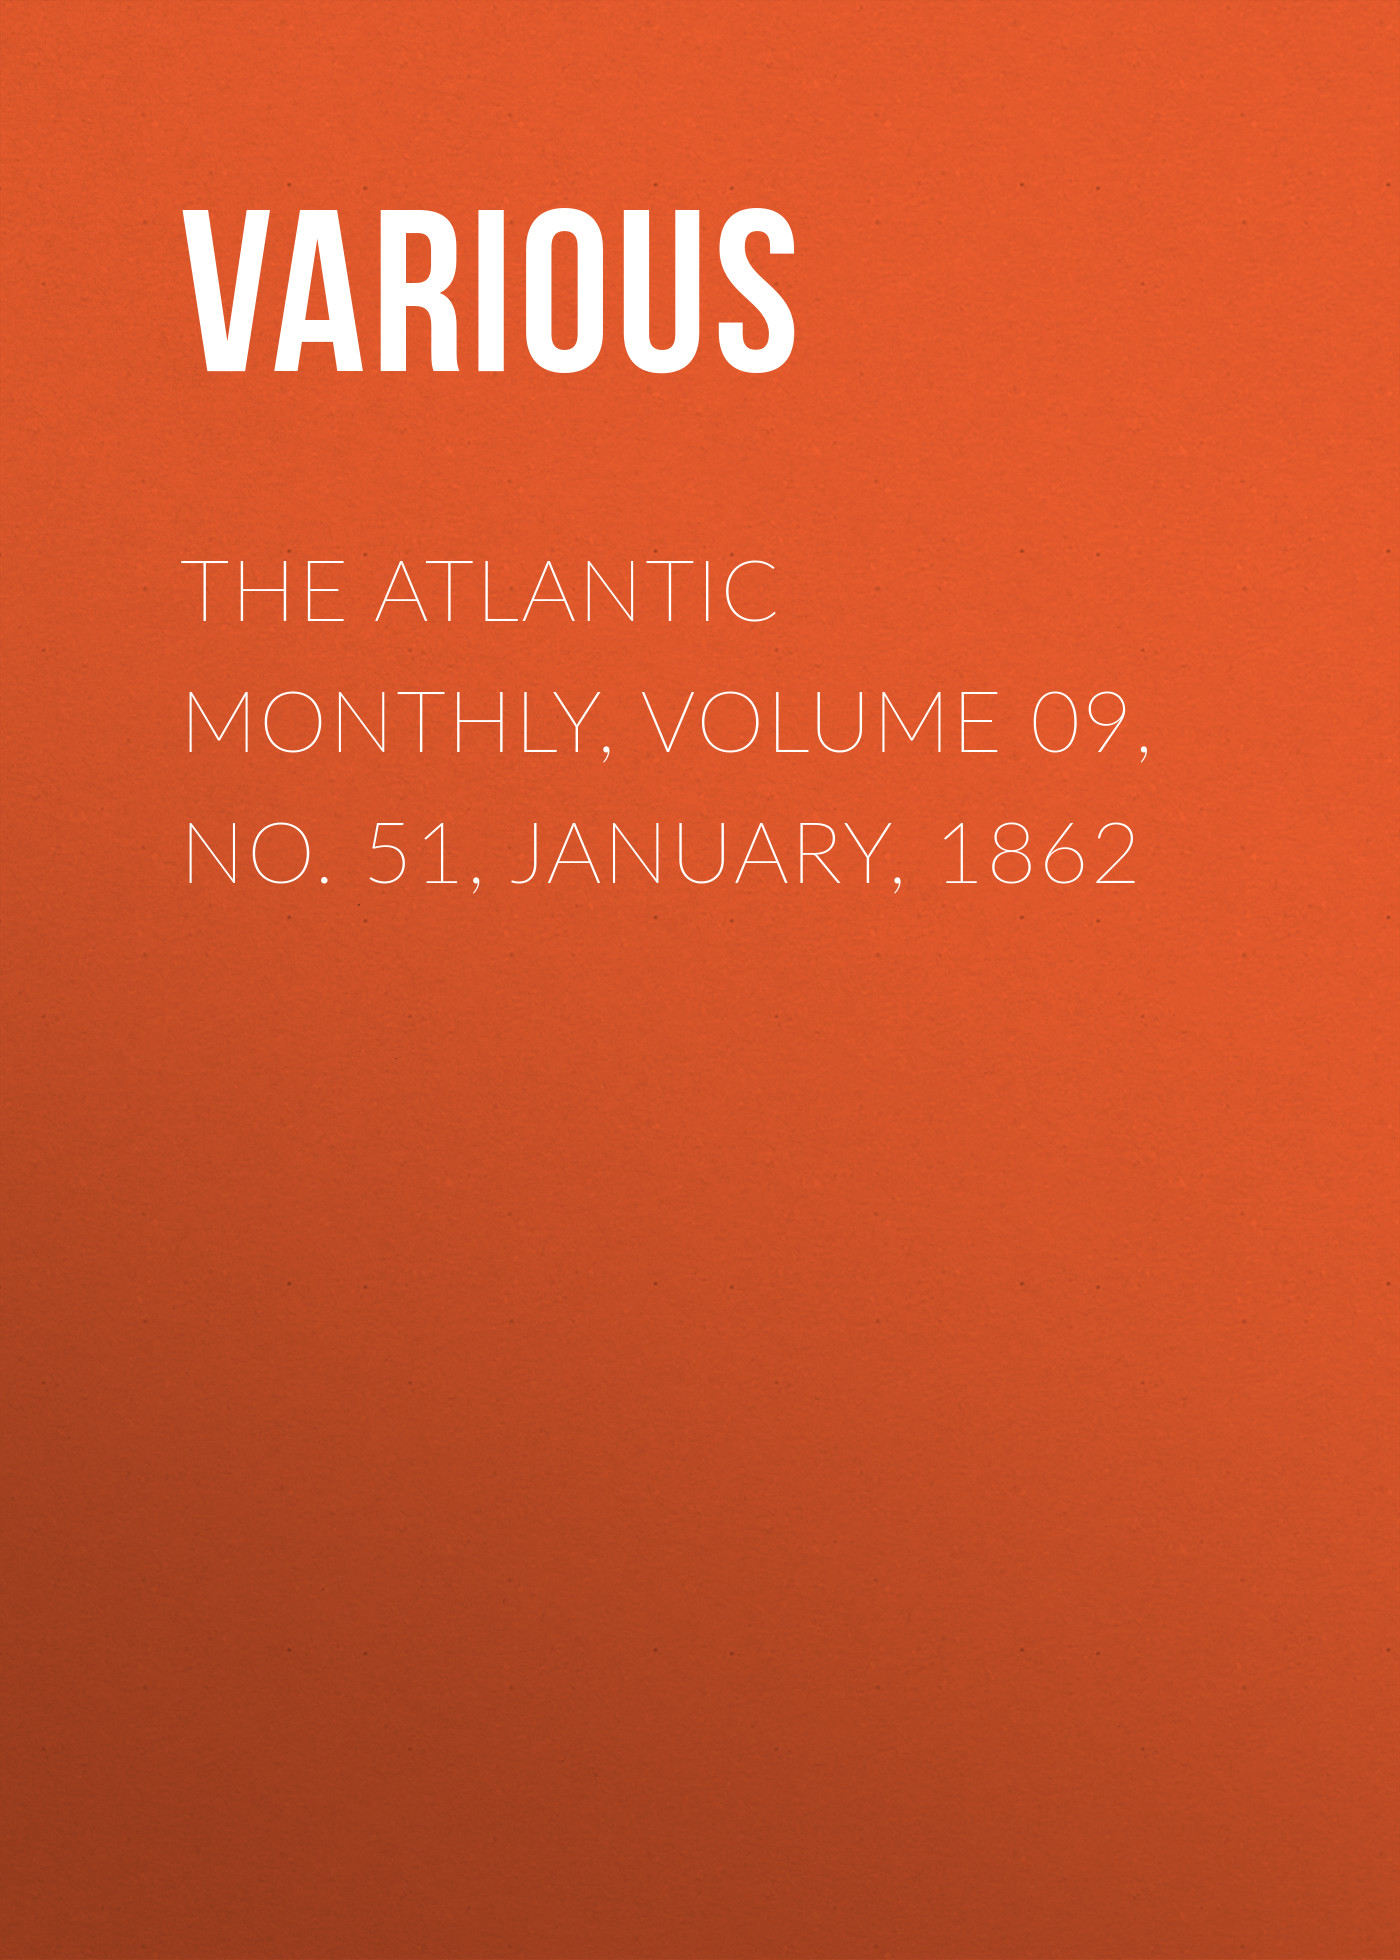 Various The Atlantic Monthly, Volume 09, No. 51, January, 1862 various the atlantic monthly volume 11 no 63 january 1863